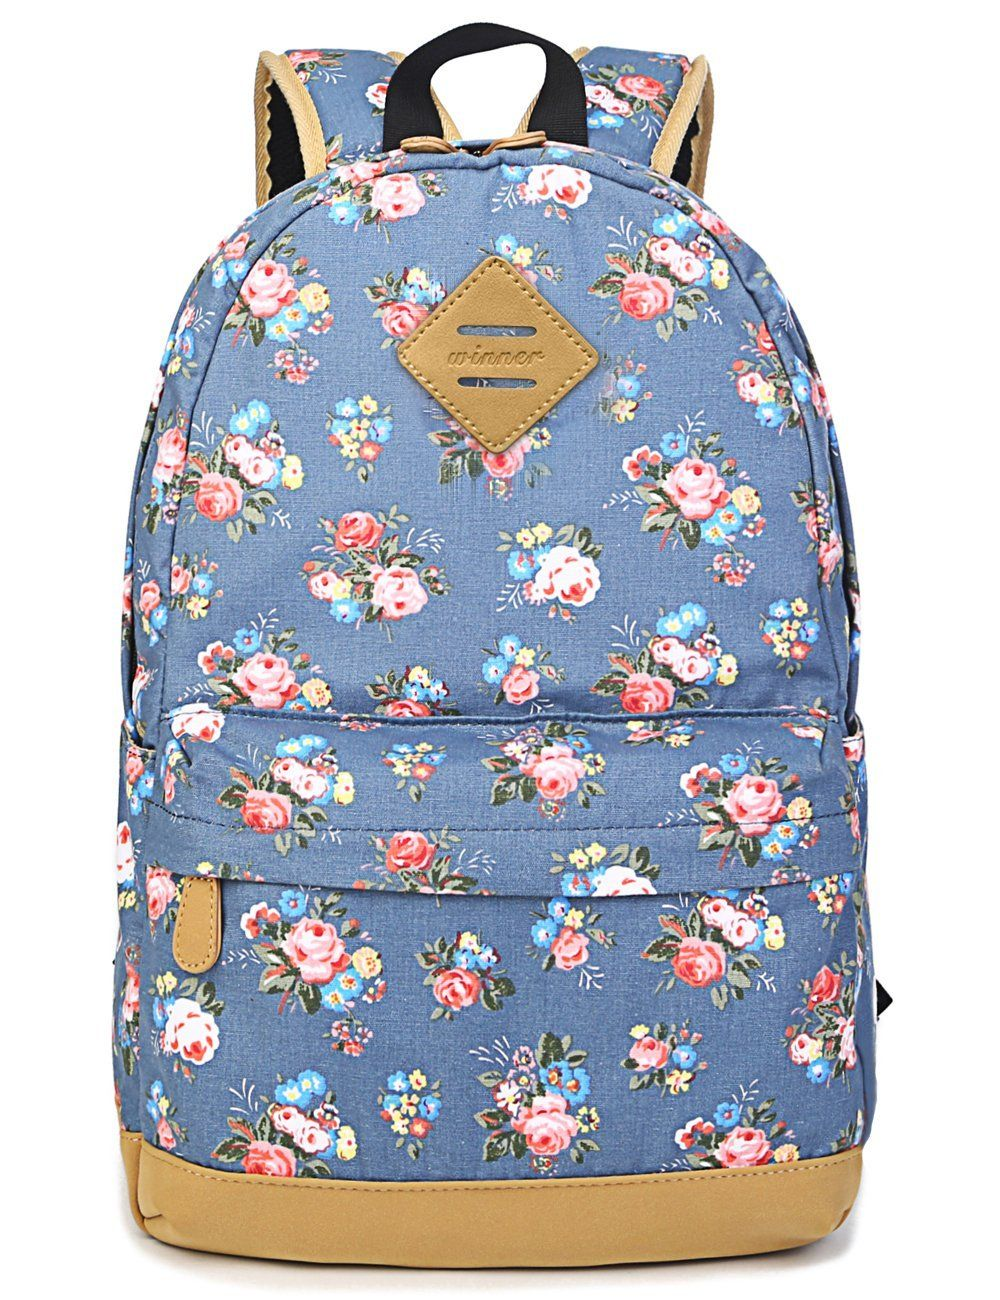 944dc0a70e65 Amazon.com  Leaper Casual Style Lightweight Canvas Laptop Backpack Cute  Travel School College Shoulder Bag Bookbags Daypack for Teenage ...